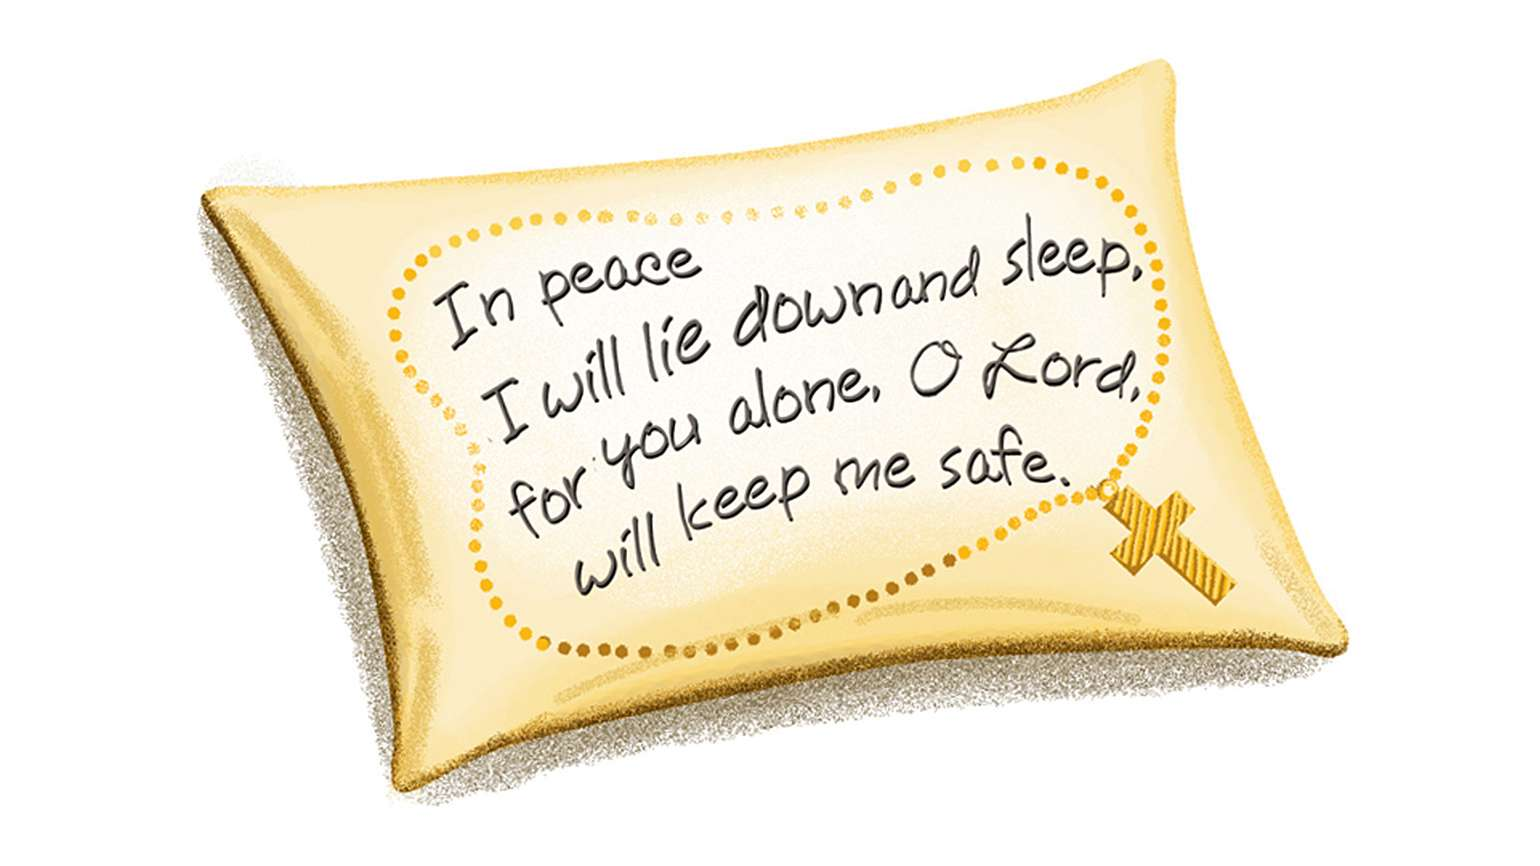 An artist's rendering of a pillowcase with scripture embroidered on it